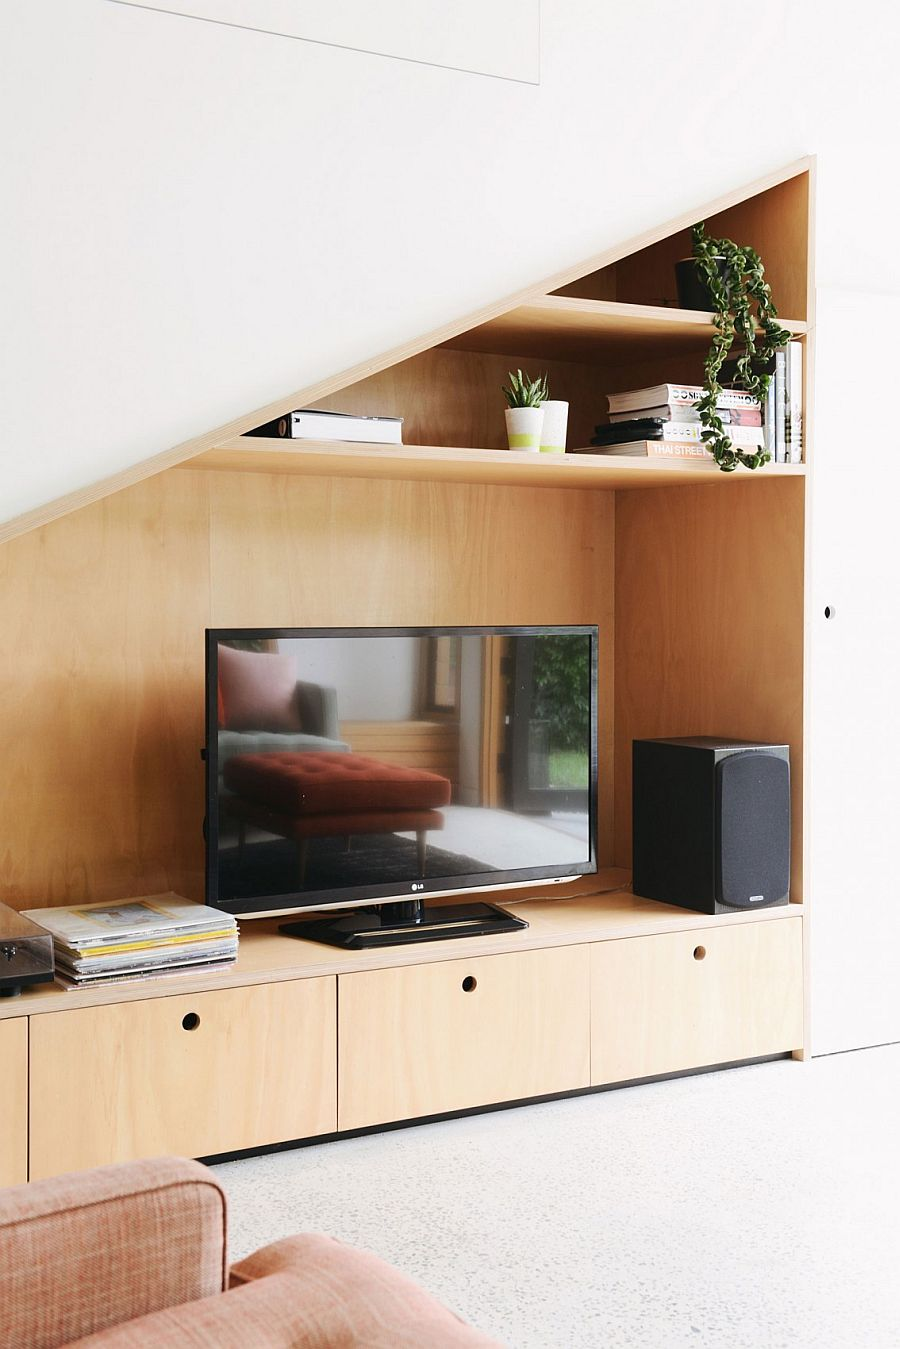 Clever living room niche contains the TV and entertainment options